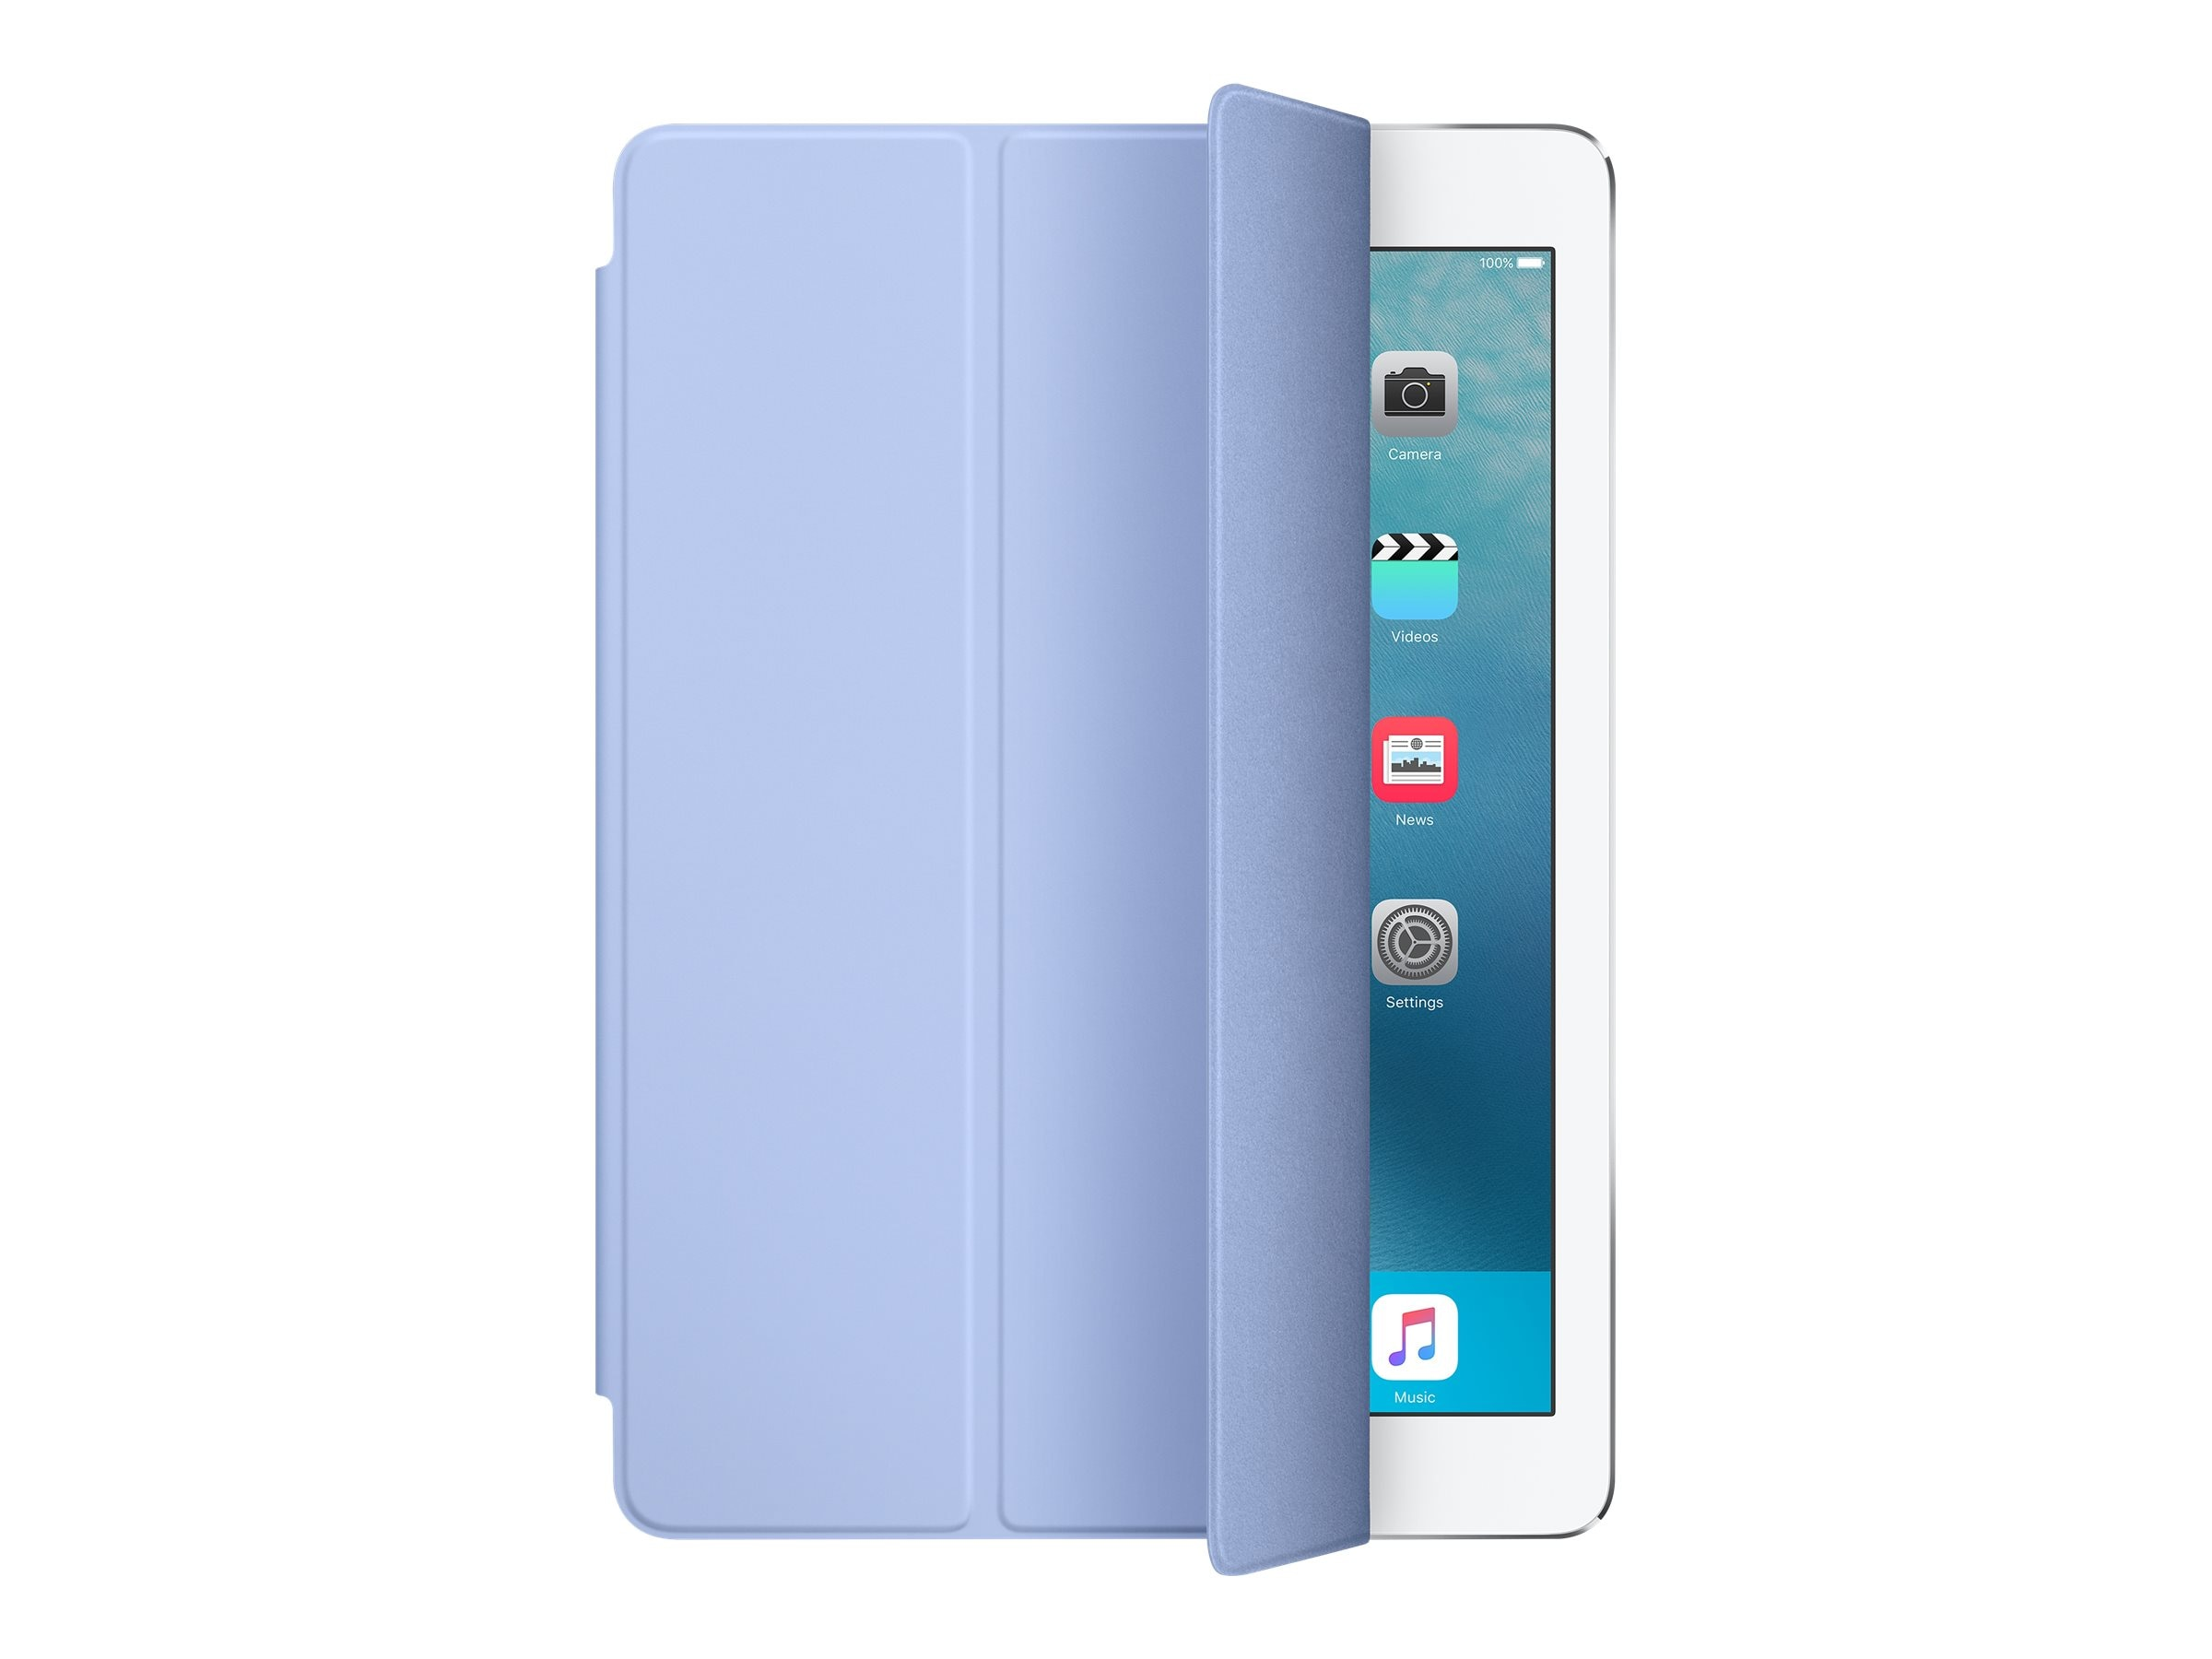 Apple Smart Cover for iPad Pro 9.7, Lilac, MMG72AM/A, 31812335, Carrying Cases - Tablets & eReaders